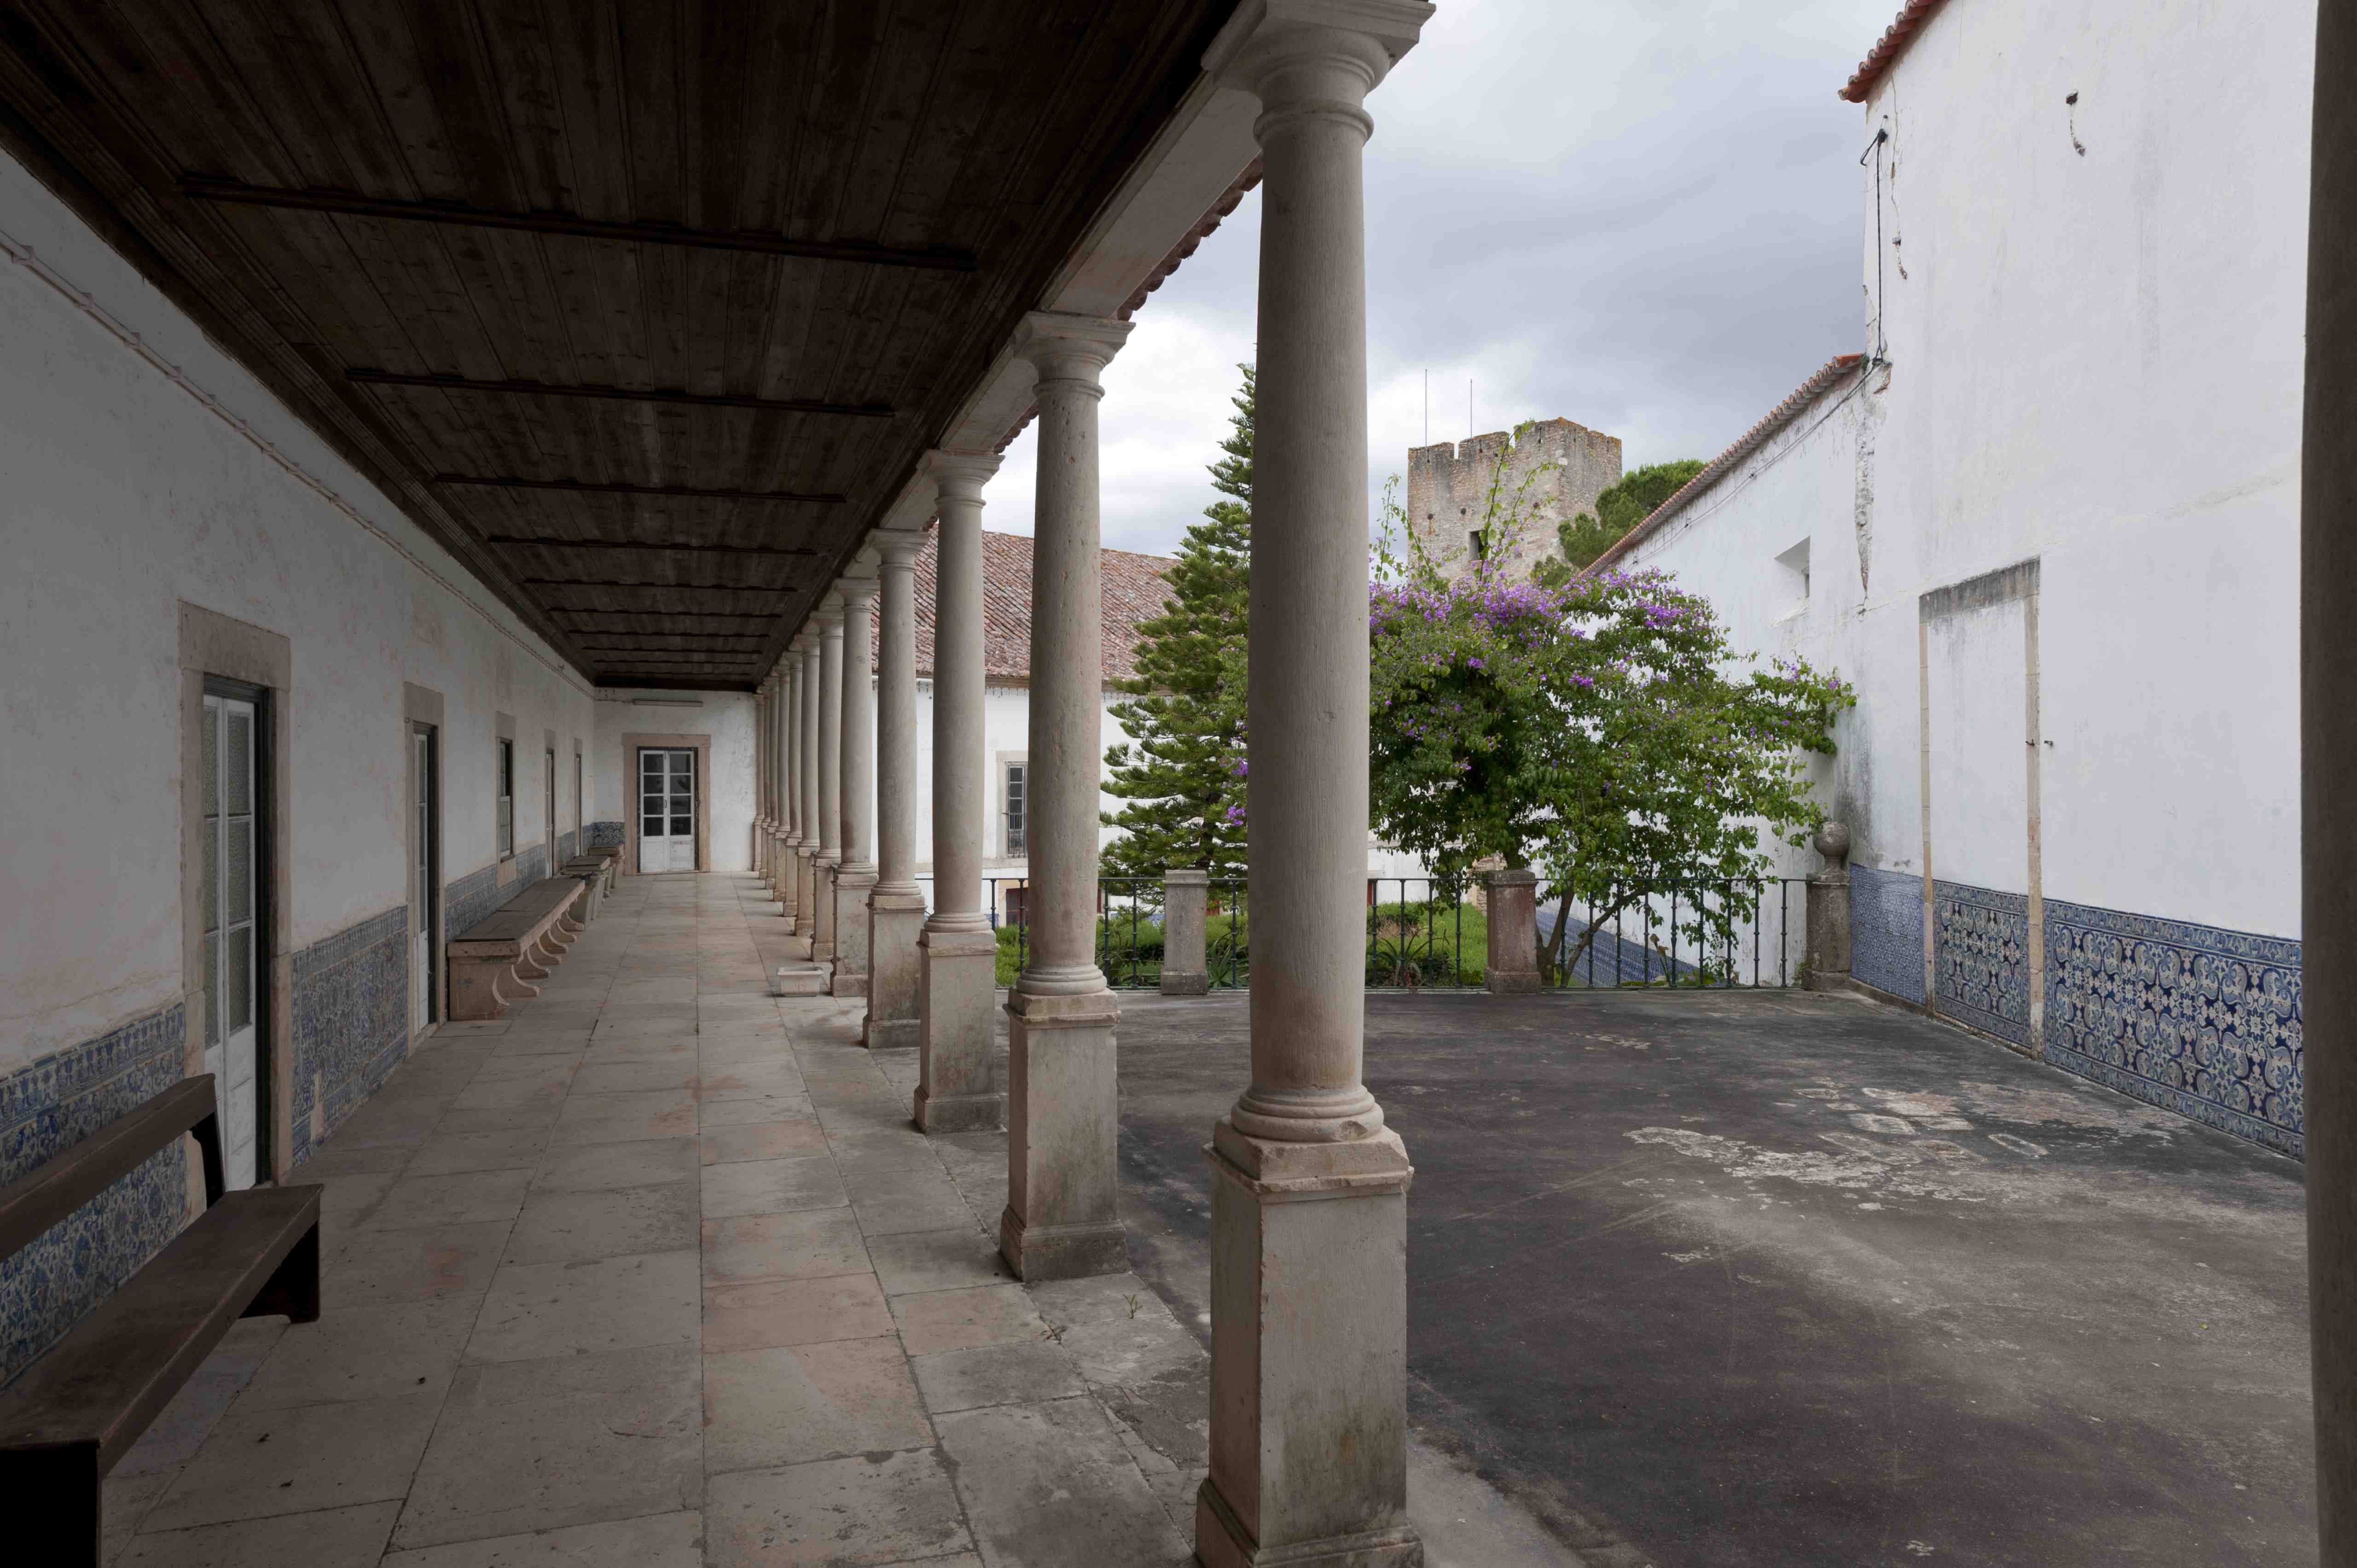 Patio of Botica Convent of Christ (east view)